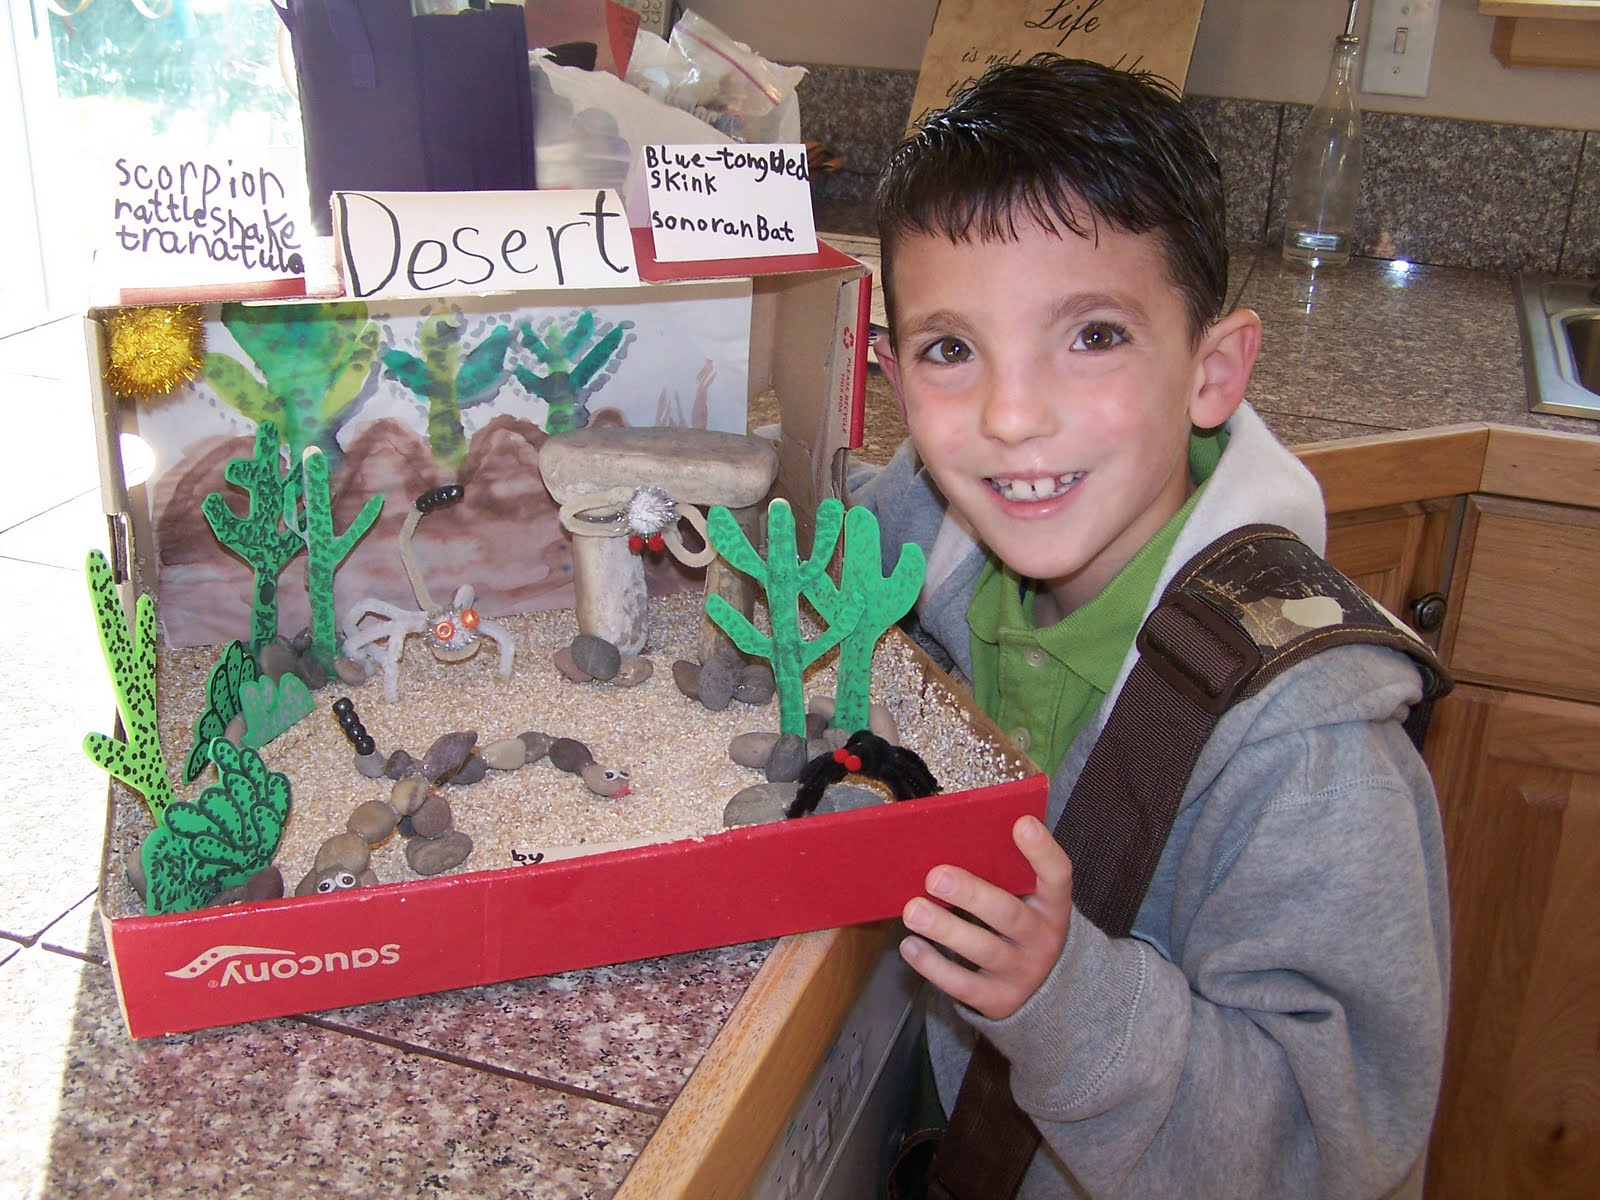 Snake Projects With Shoe Box http://teambryanshomeplate.blogspot.com/2011/08/kendals-desert-habitat-diorama.html